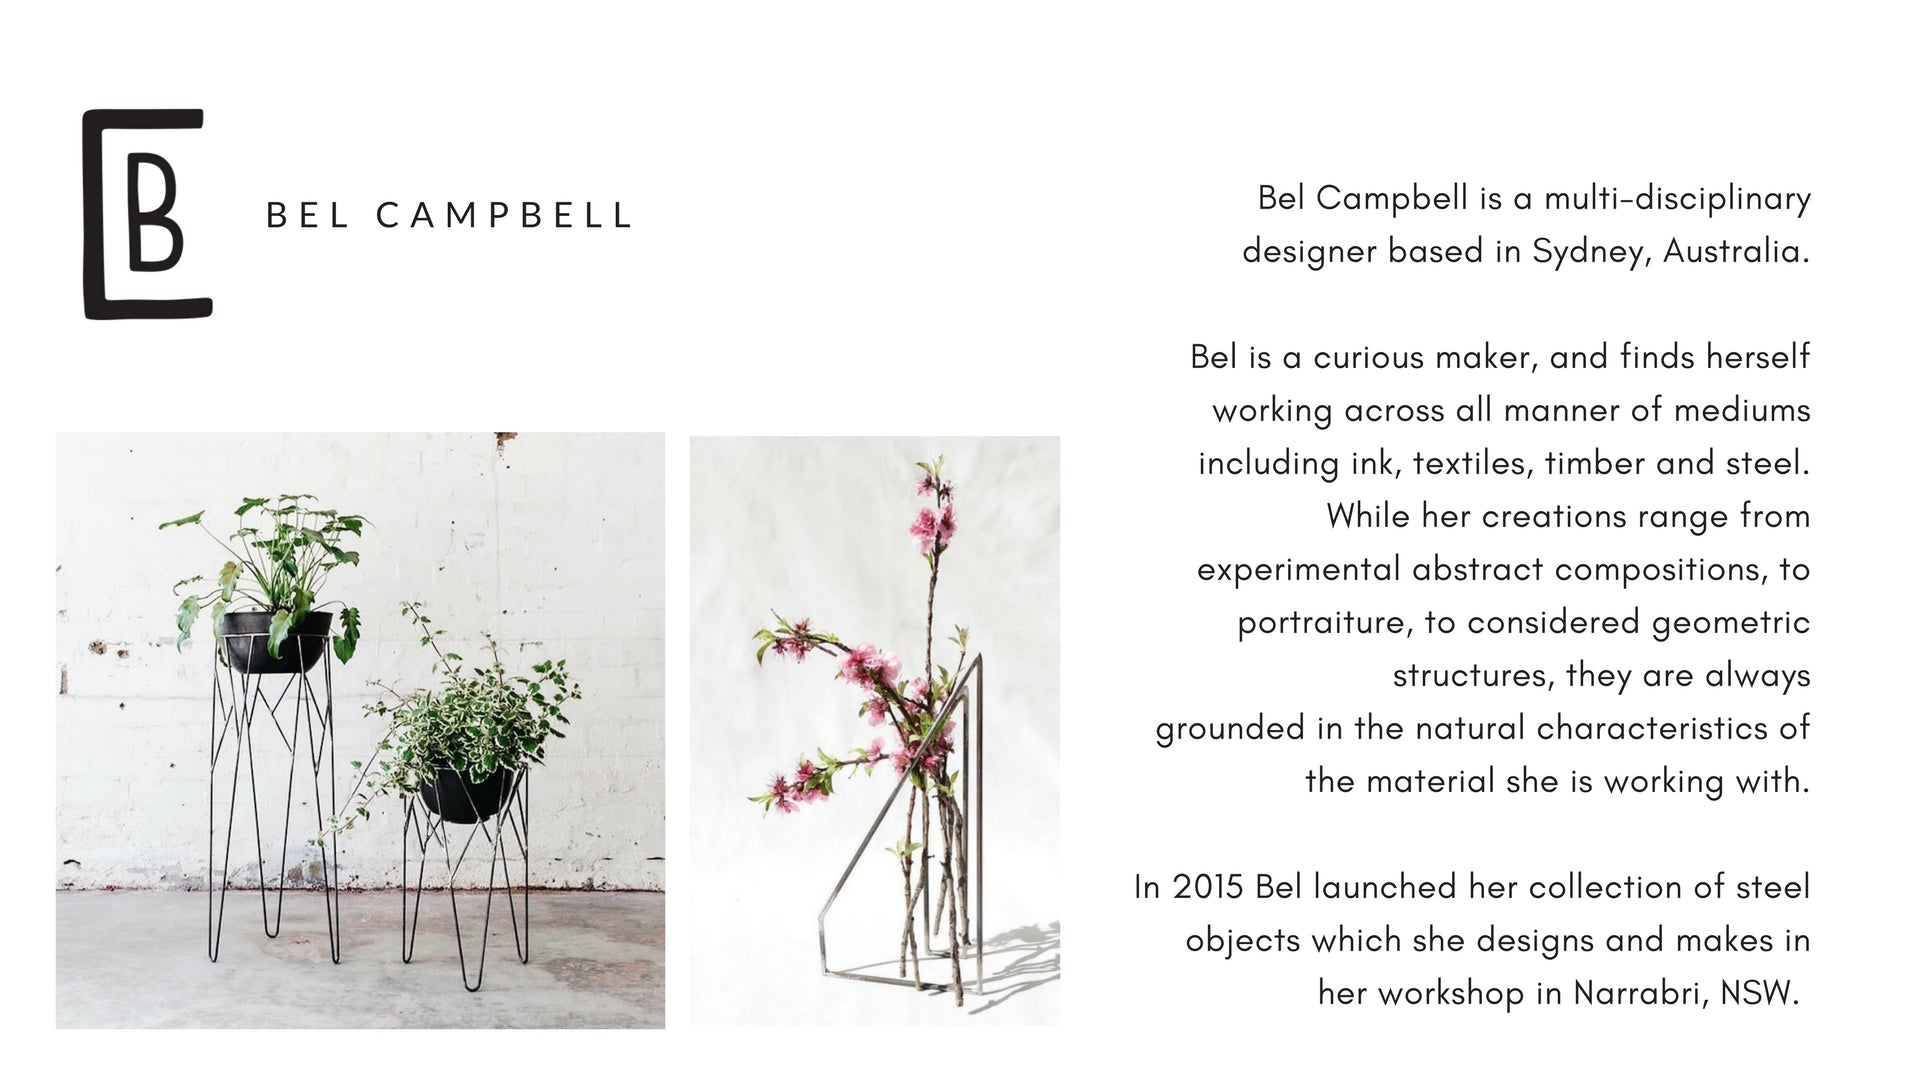 Bel Campbell Design Studio